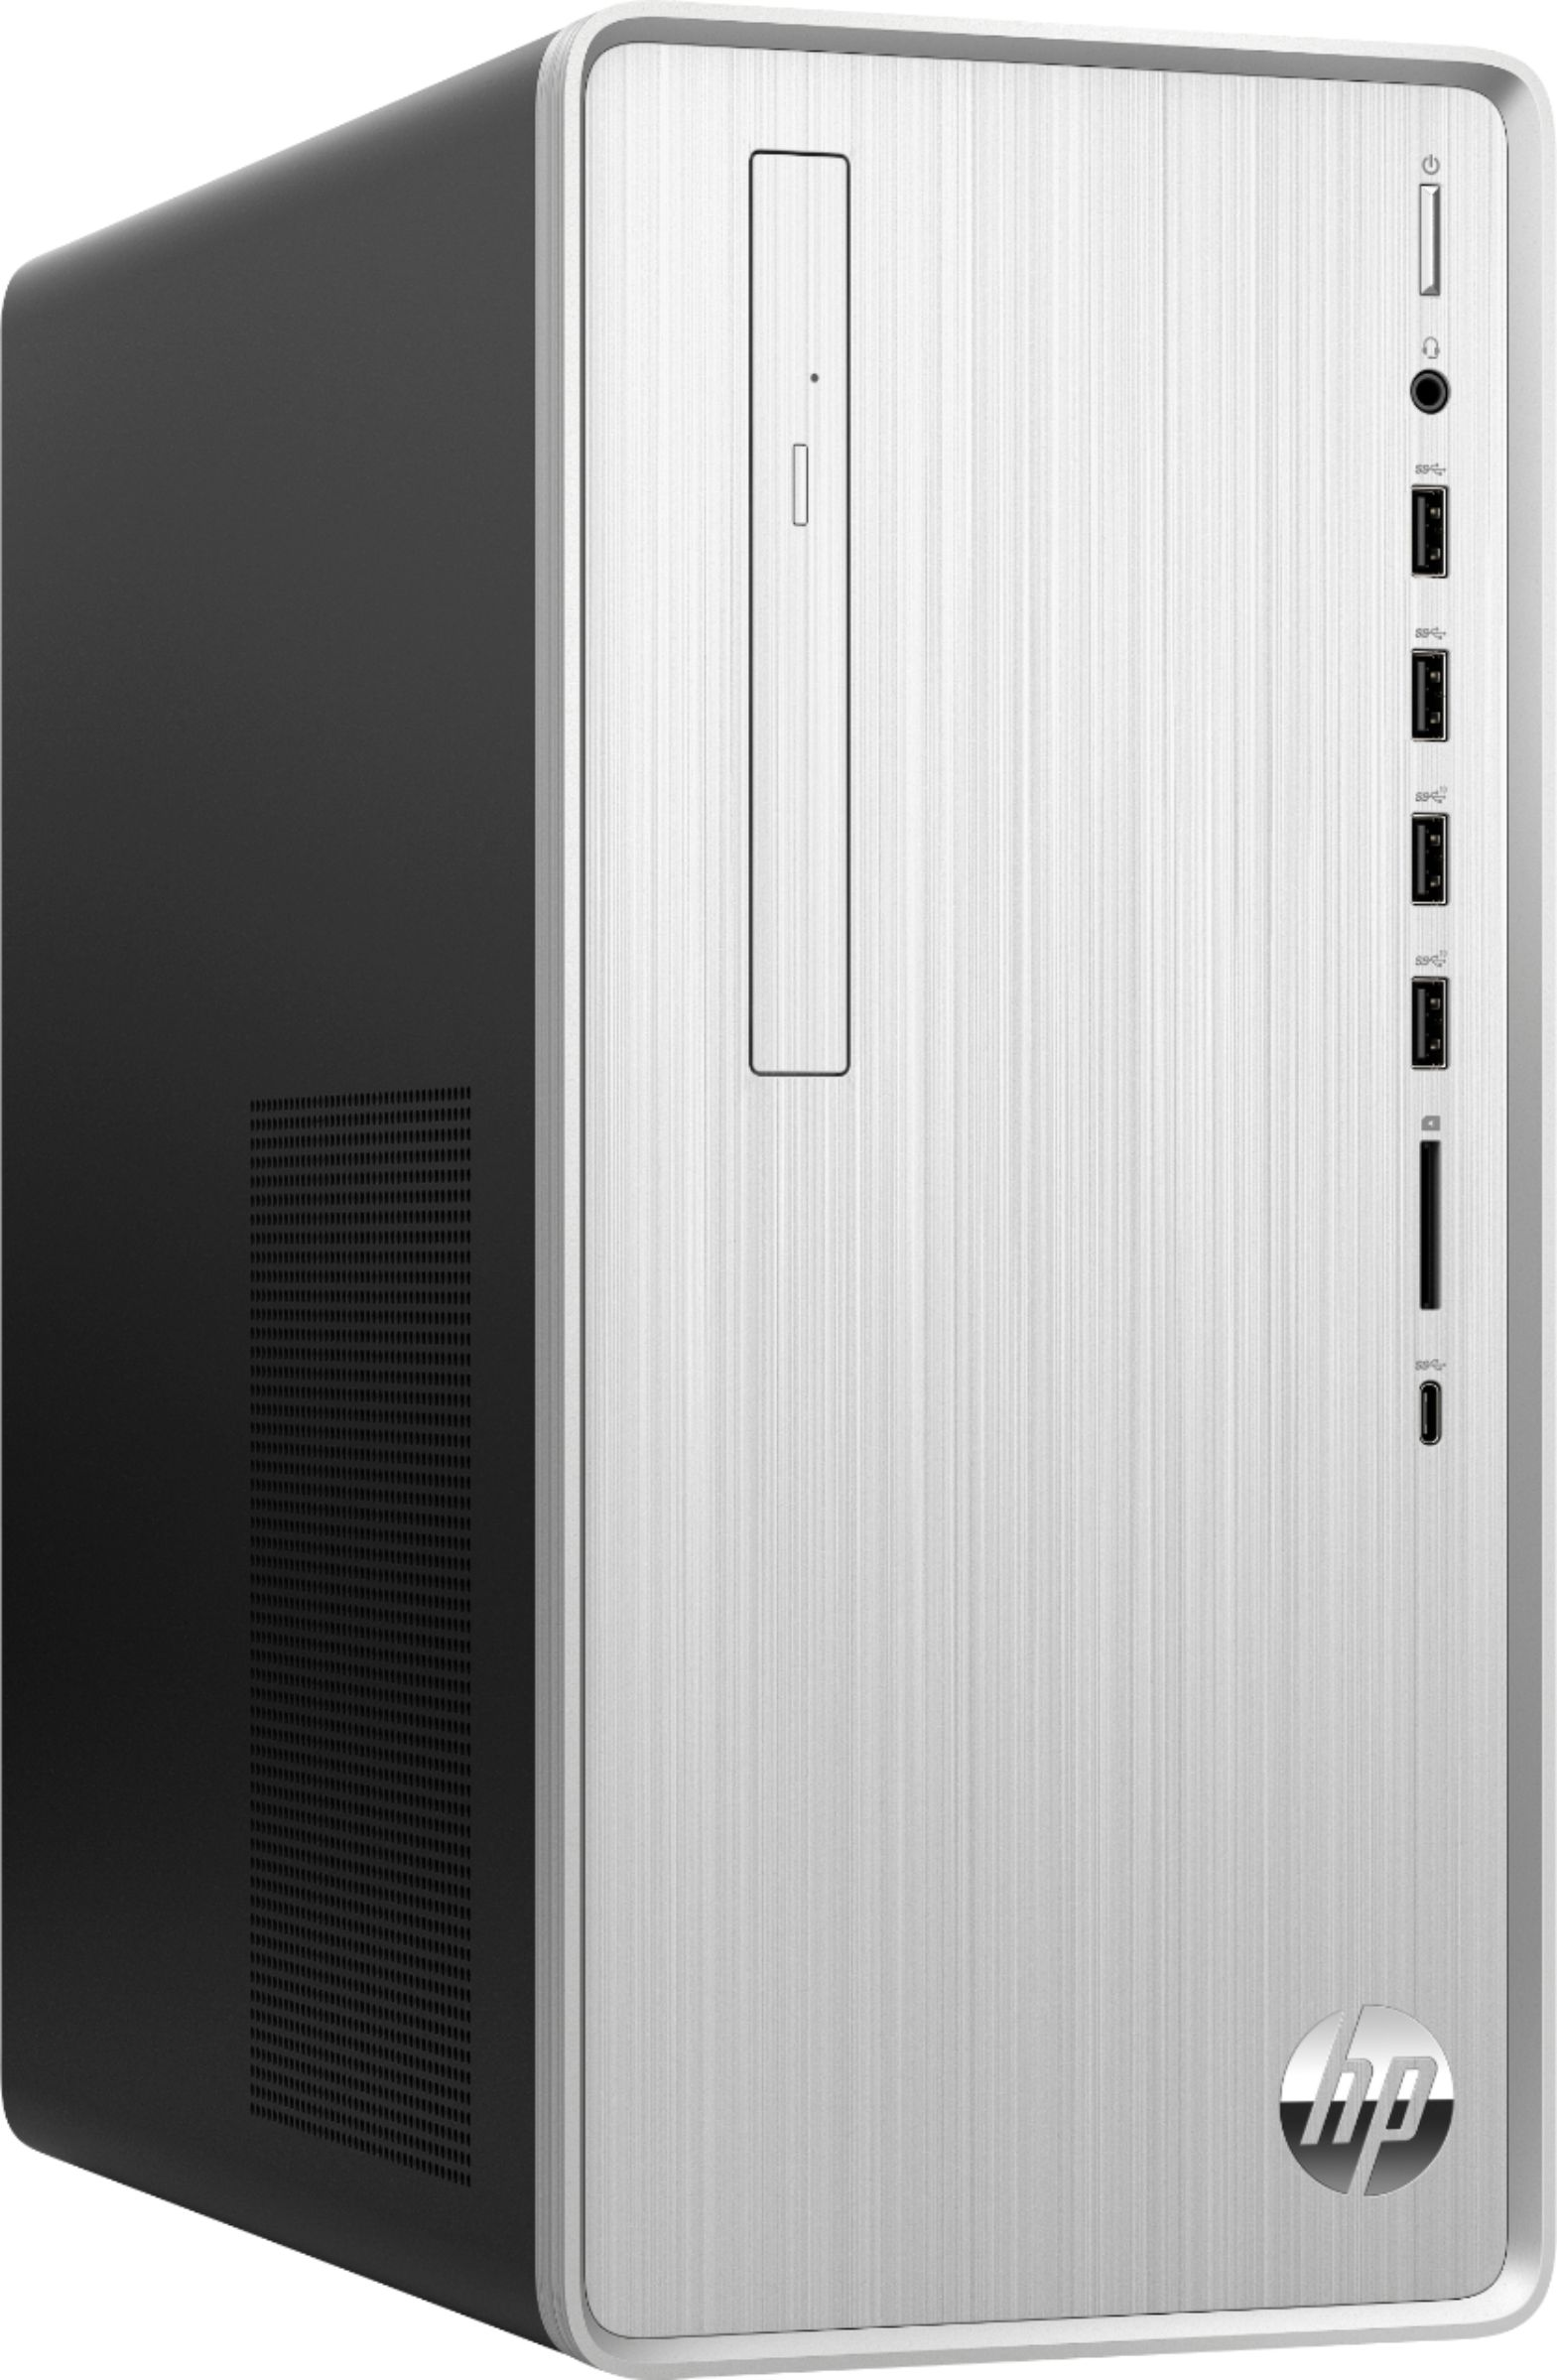 Angle Zoom. Pavilion Desktop - Intel Core i7 - 8GB Memory - 256GB SSD - HP Finish In Natural Silver.